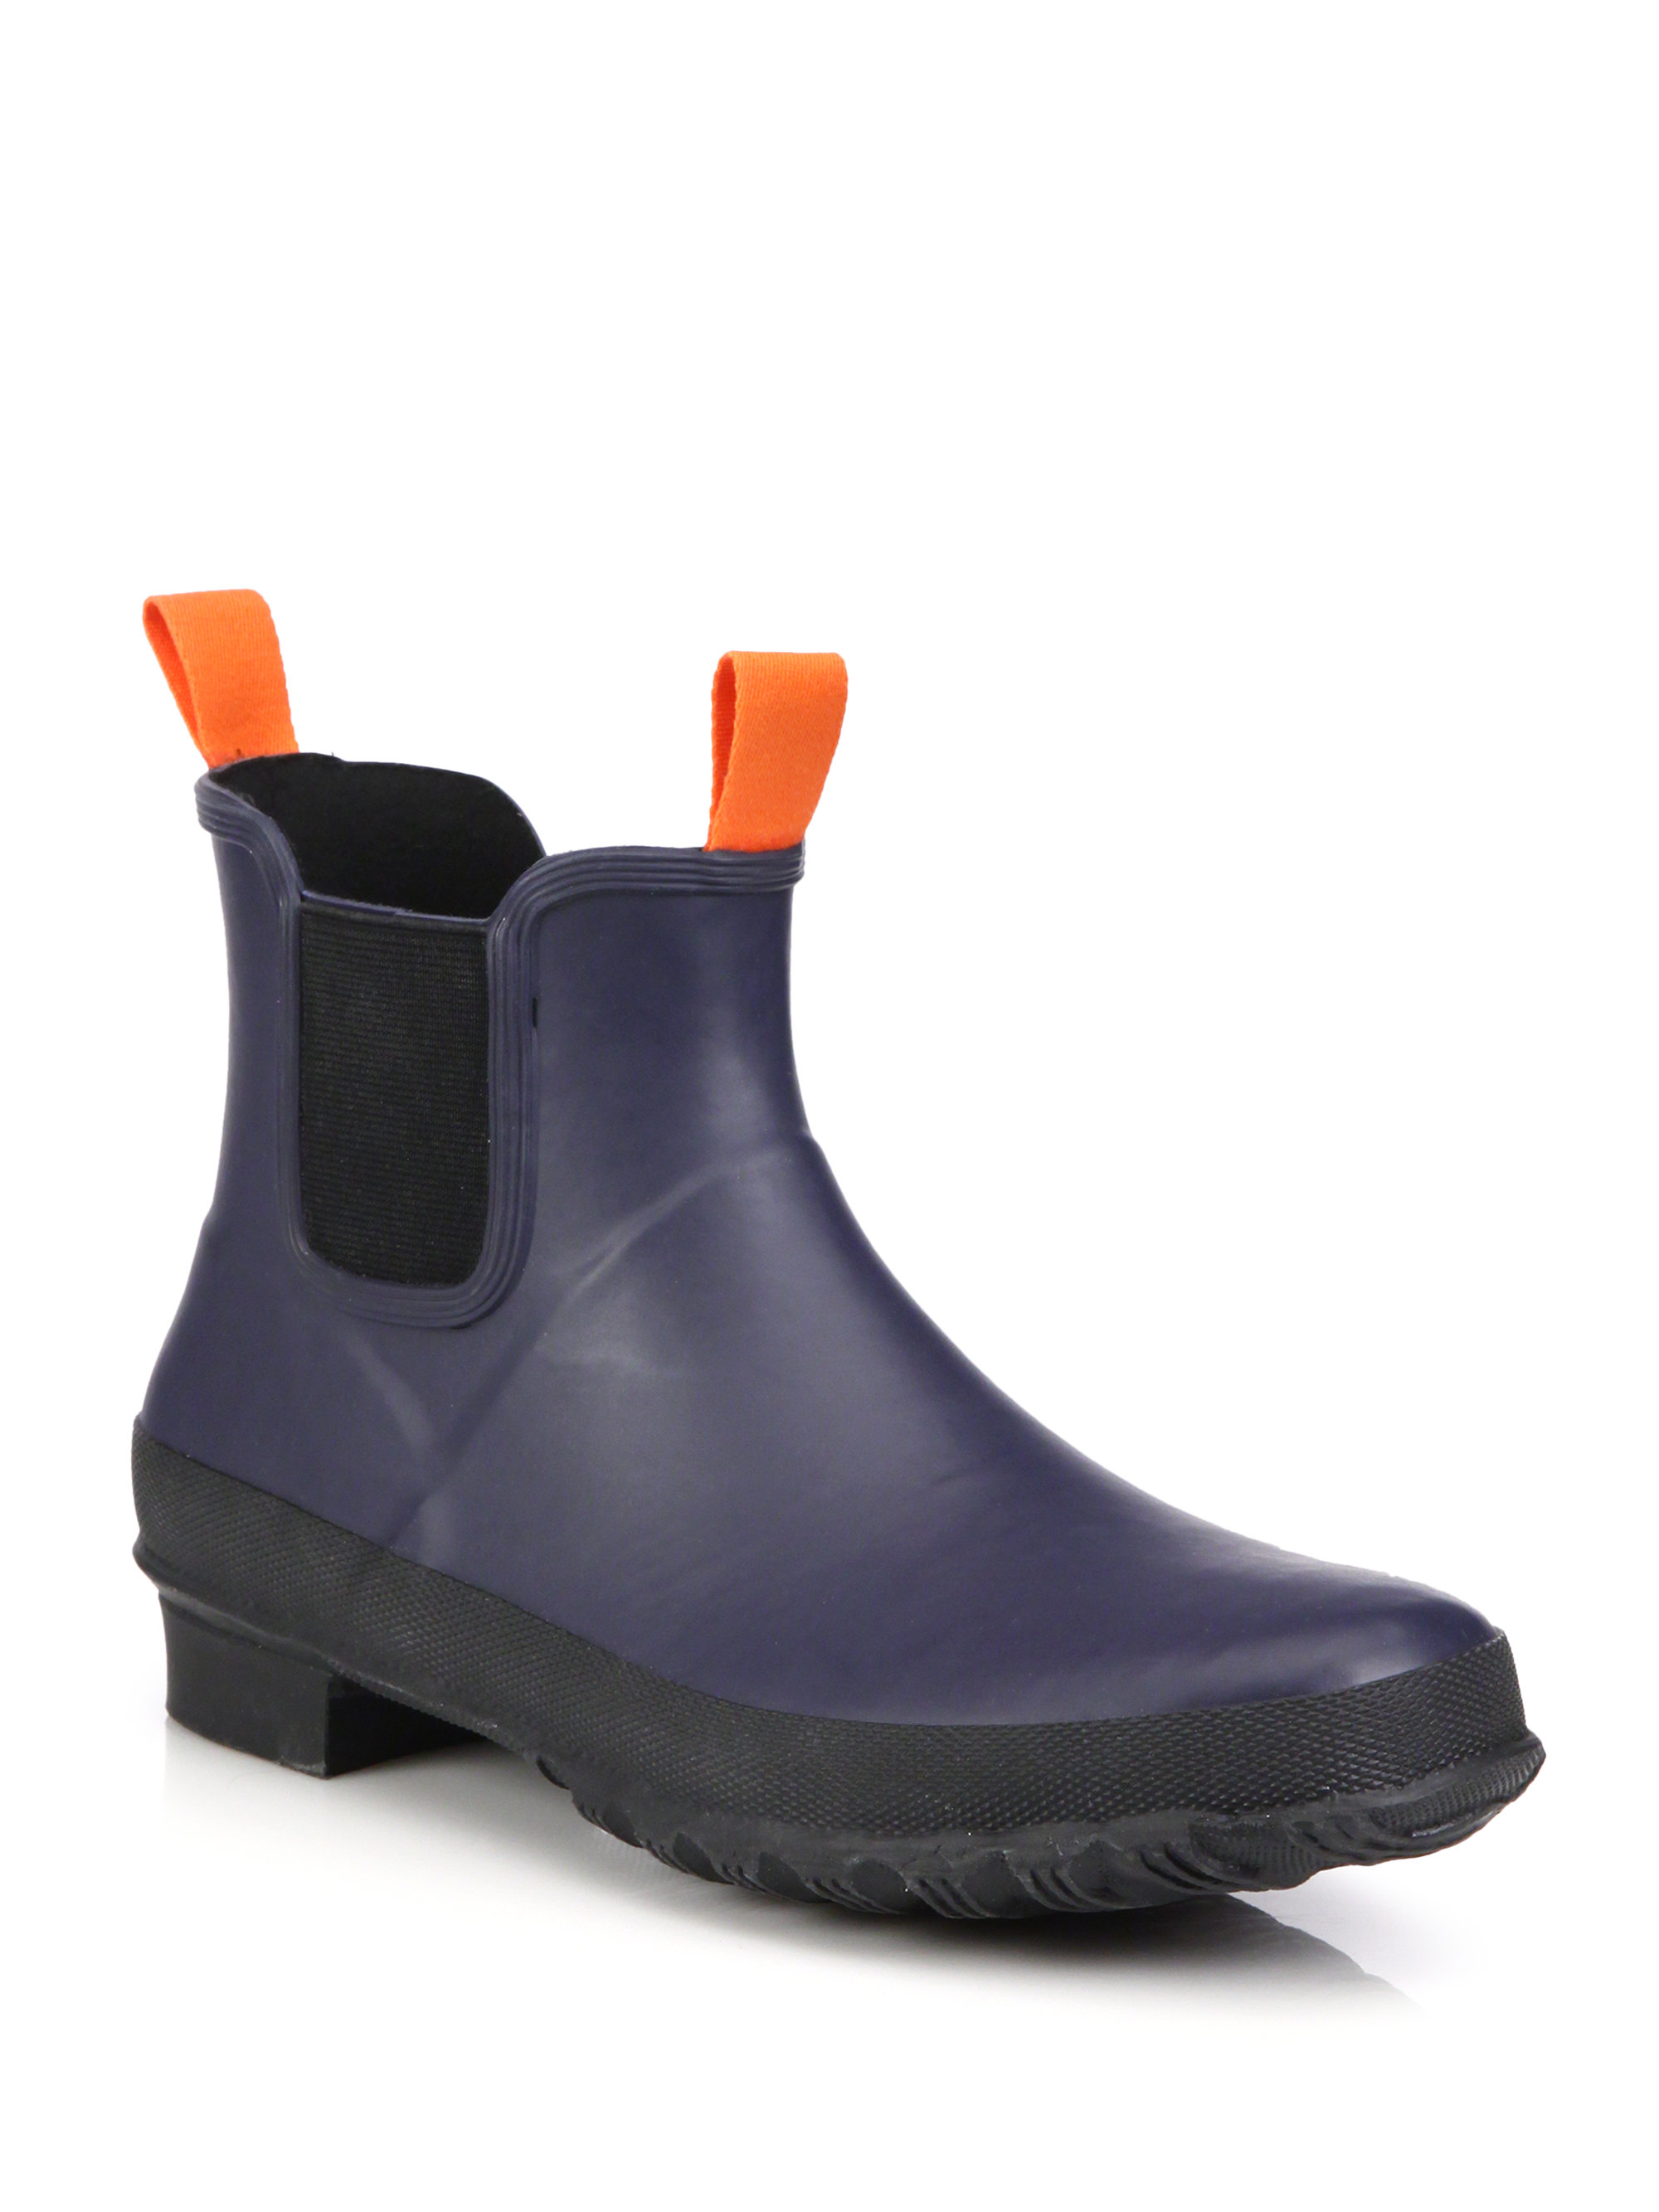 Lyst Swims Charlie Rubber Chelsea Boots In Black For Men